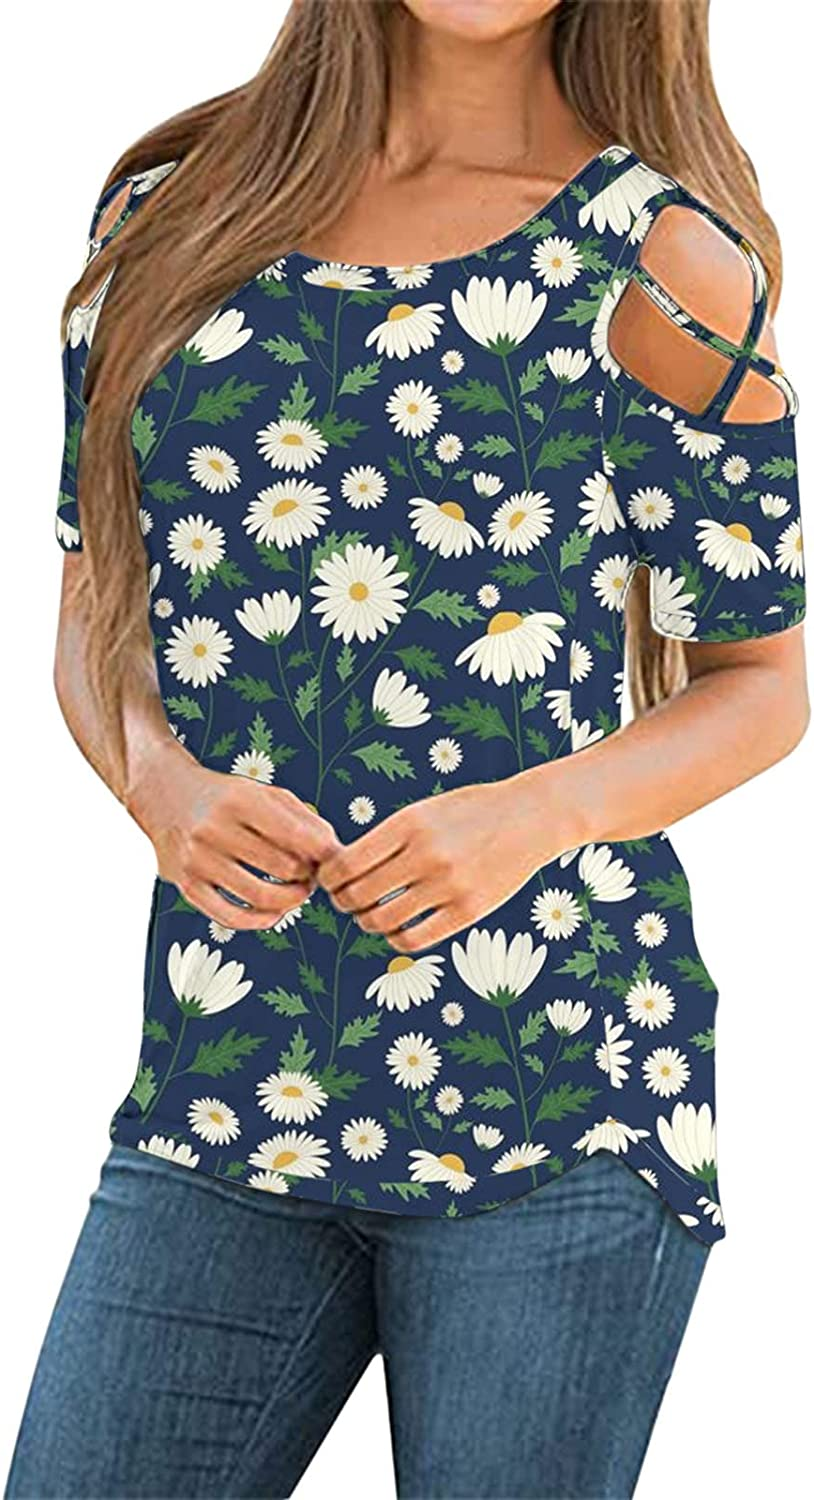 Cold Shoulder Tops for Women,Womens Tshirts Short Sleeve Summer Tops Strappy Cold Shoulder Shirts Crew Neck Tee Tunic Blue